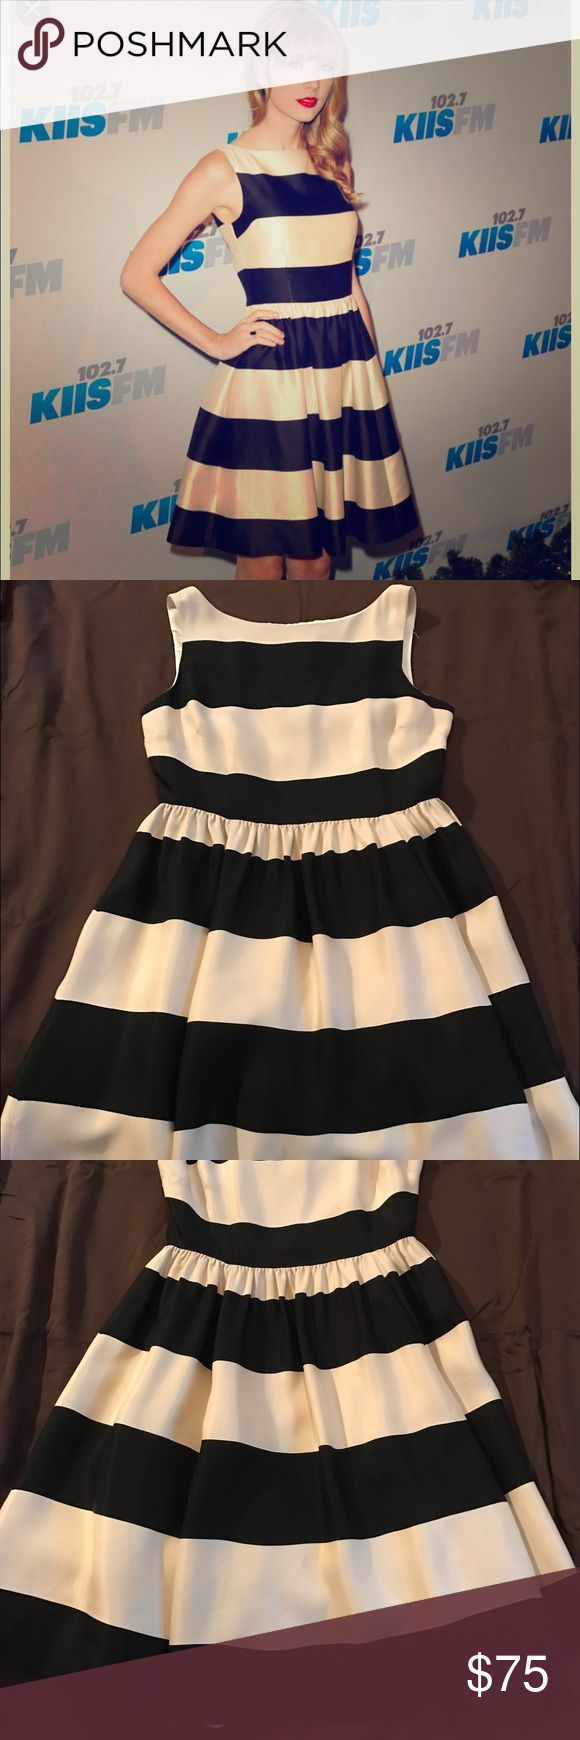 Kate Spade Party Dress Show stopping black and white striped party dress. by Kate Spade: Carolyn fit and flare. Great for all seasons - summer weddings or holiday parties. And it has pockets! Small stain on white stripe on bottom right side of skirt. Barely noticeable with flow of flare skirt. kate spade Dresses